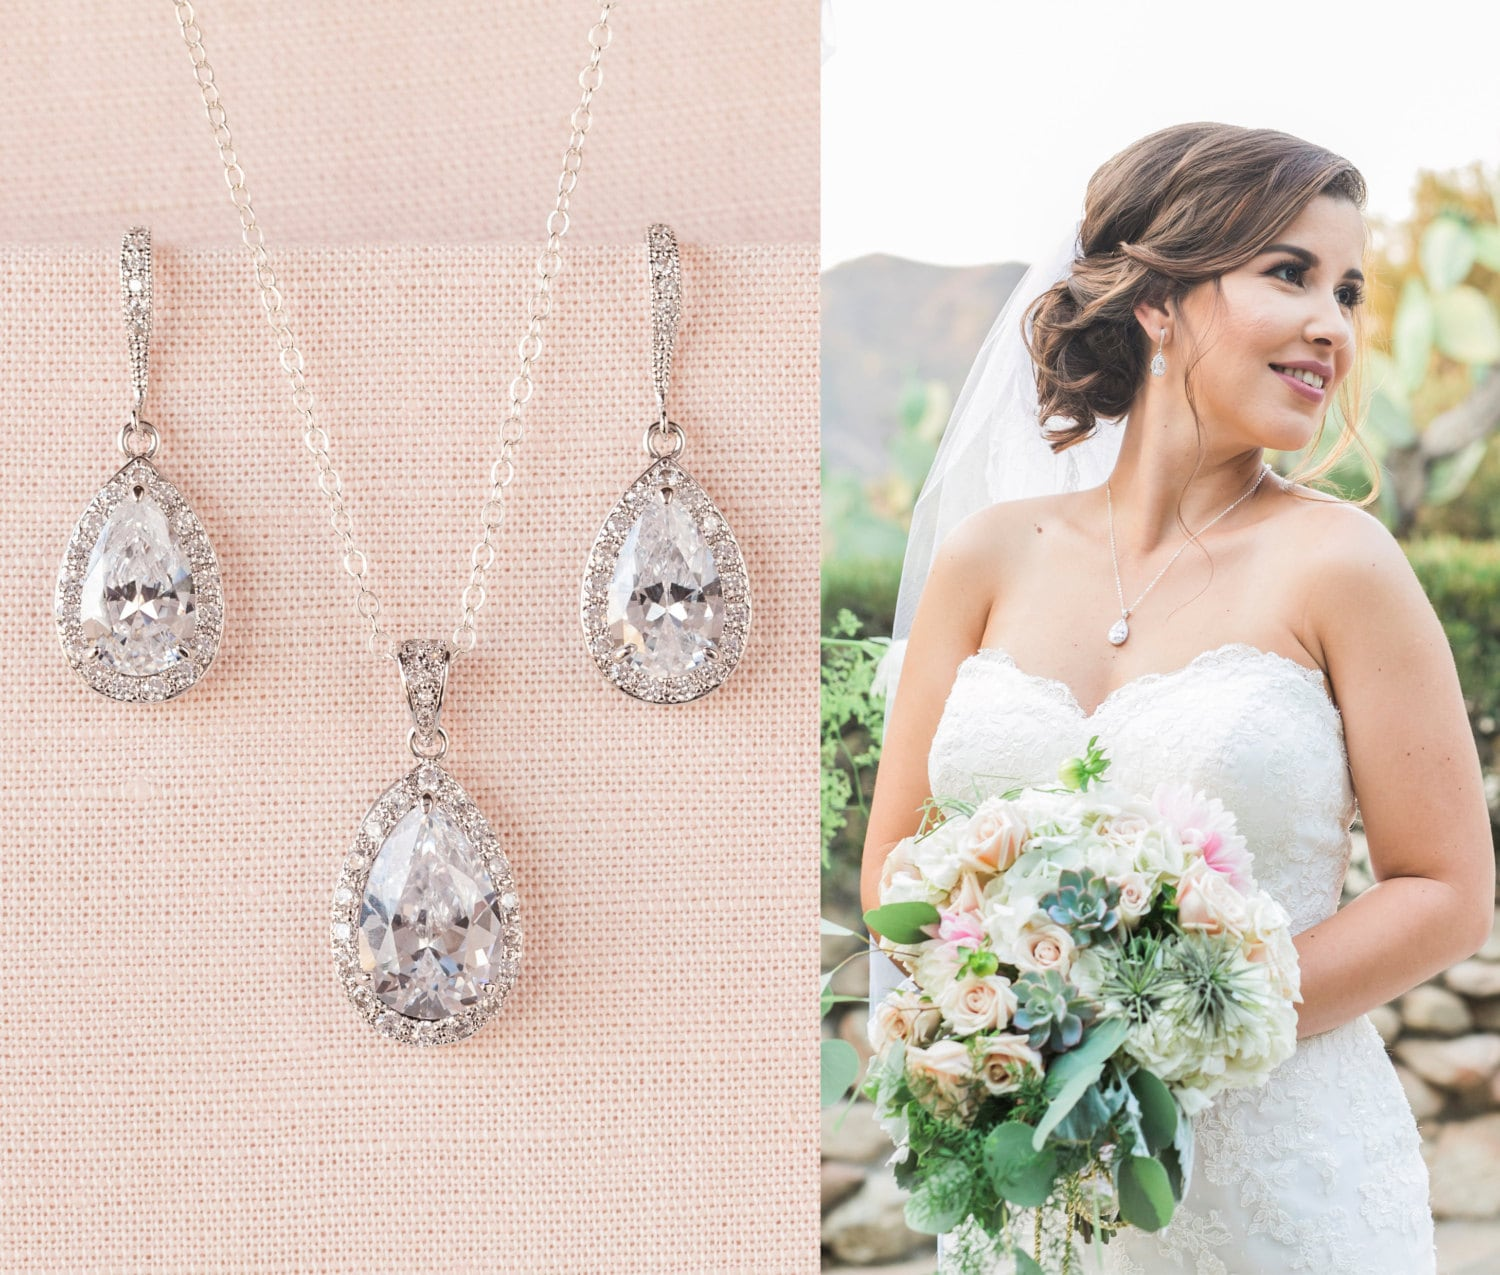 Crystal Bridal Set. Bridesmaids Jewelry Set, Crystal Pendant and Earrings, Wedding Jewellery, Ariel Bridal Jewelry SET